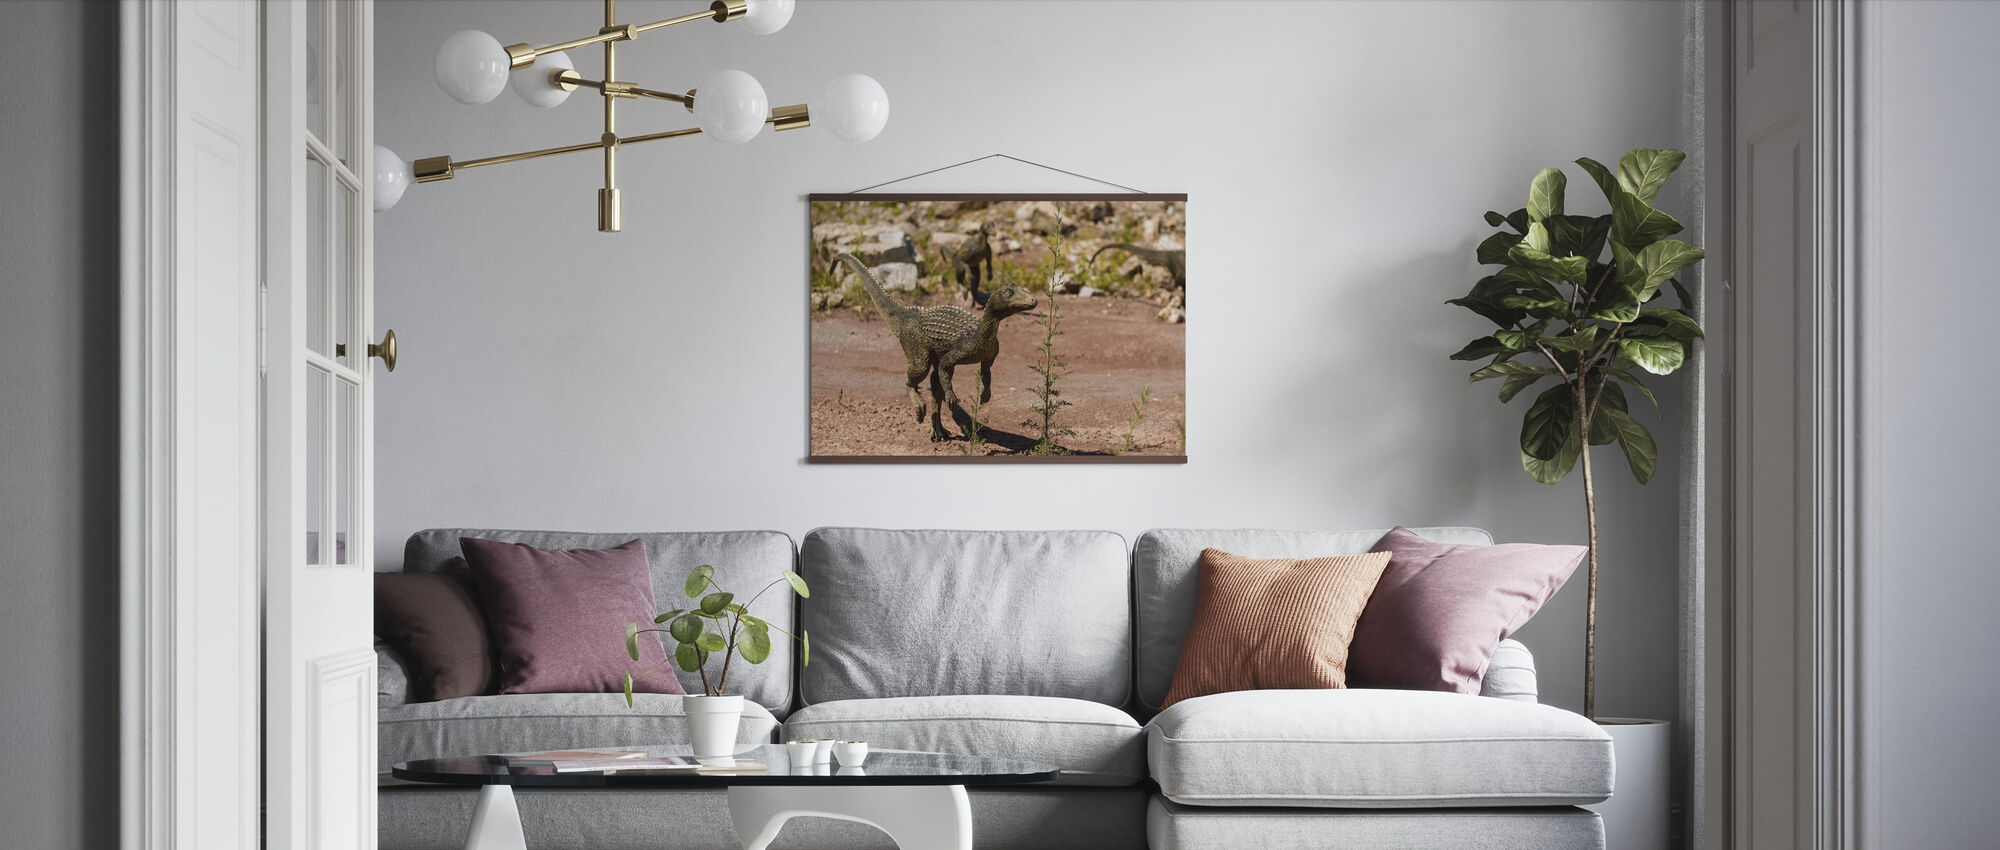 Baby Dinosaurs - Poster - Living Room